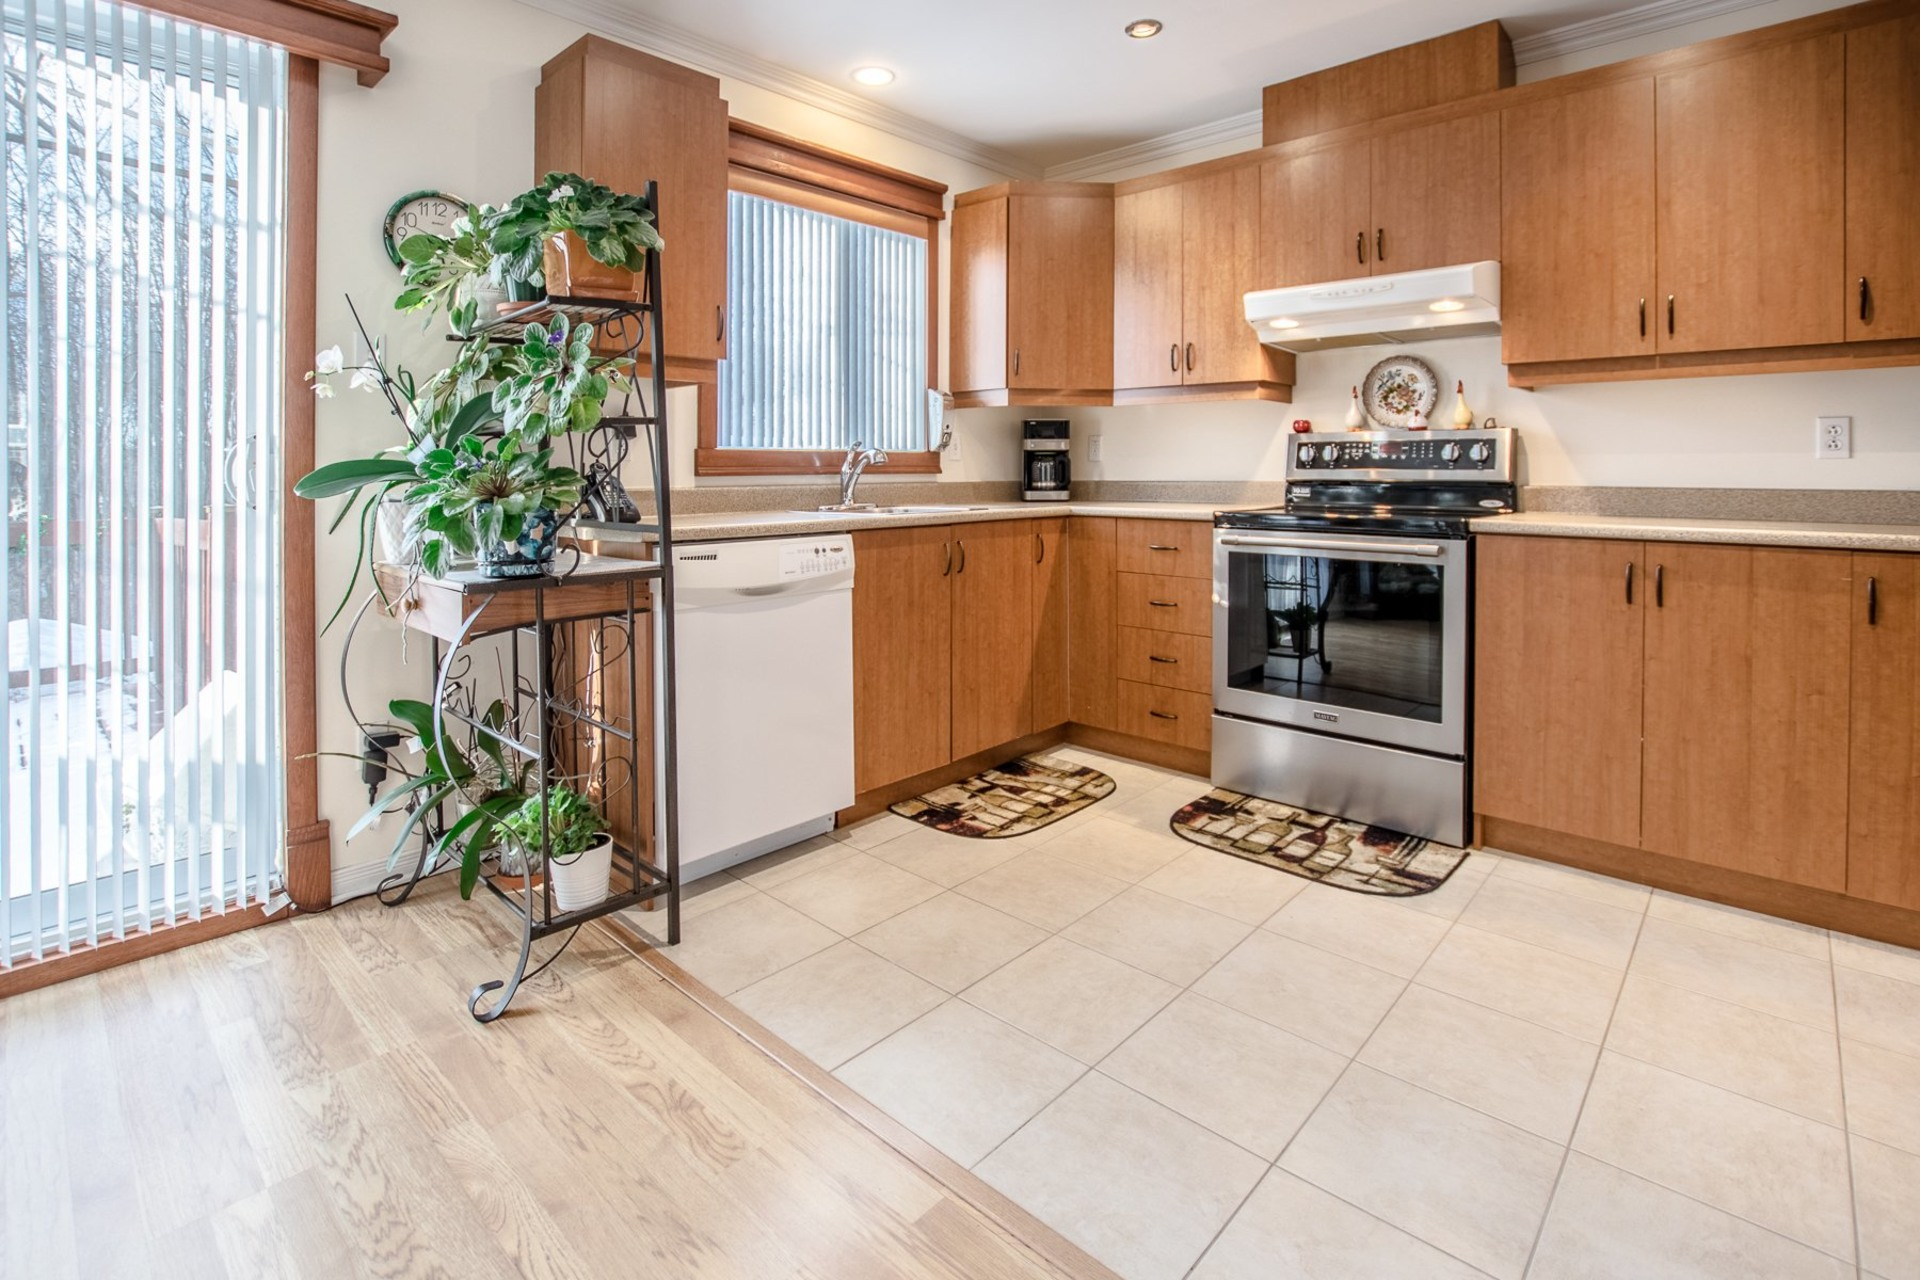 image 5 - Apartment For sale Châteauguay - 7 rooms